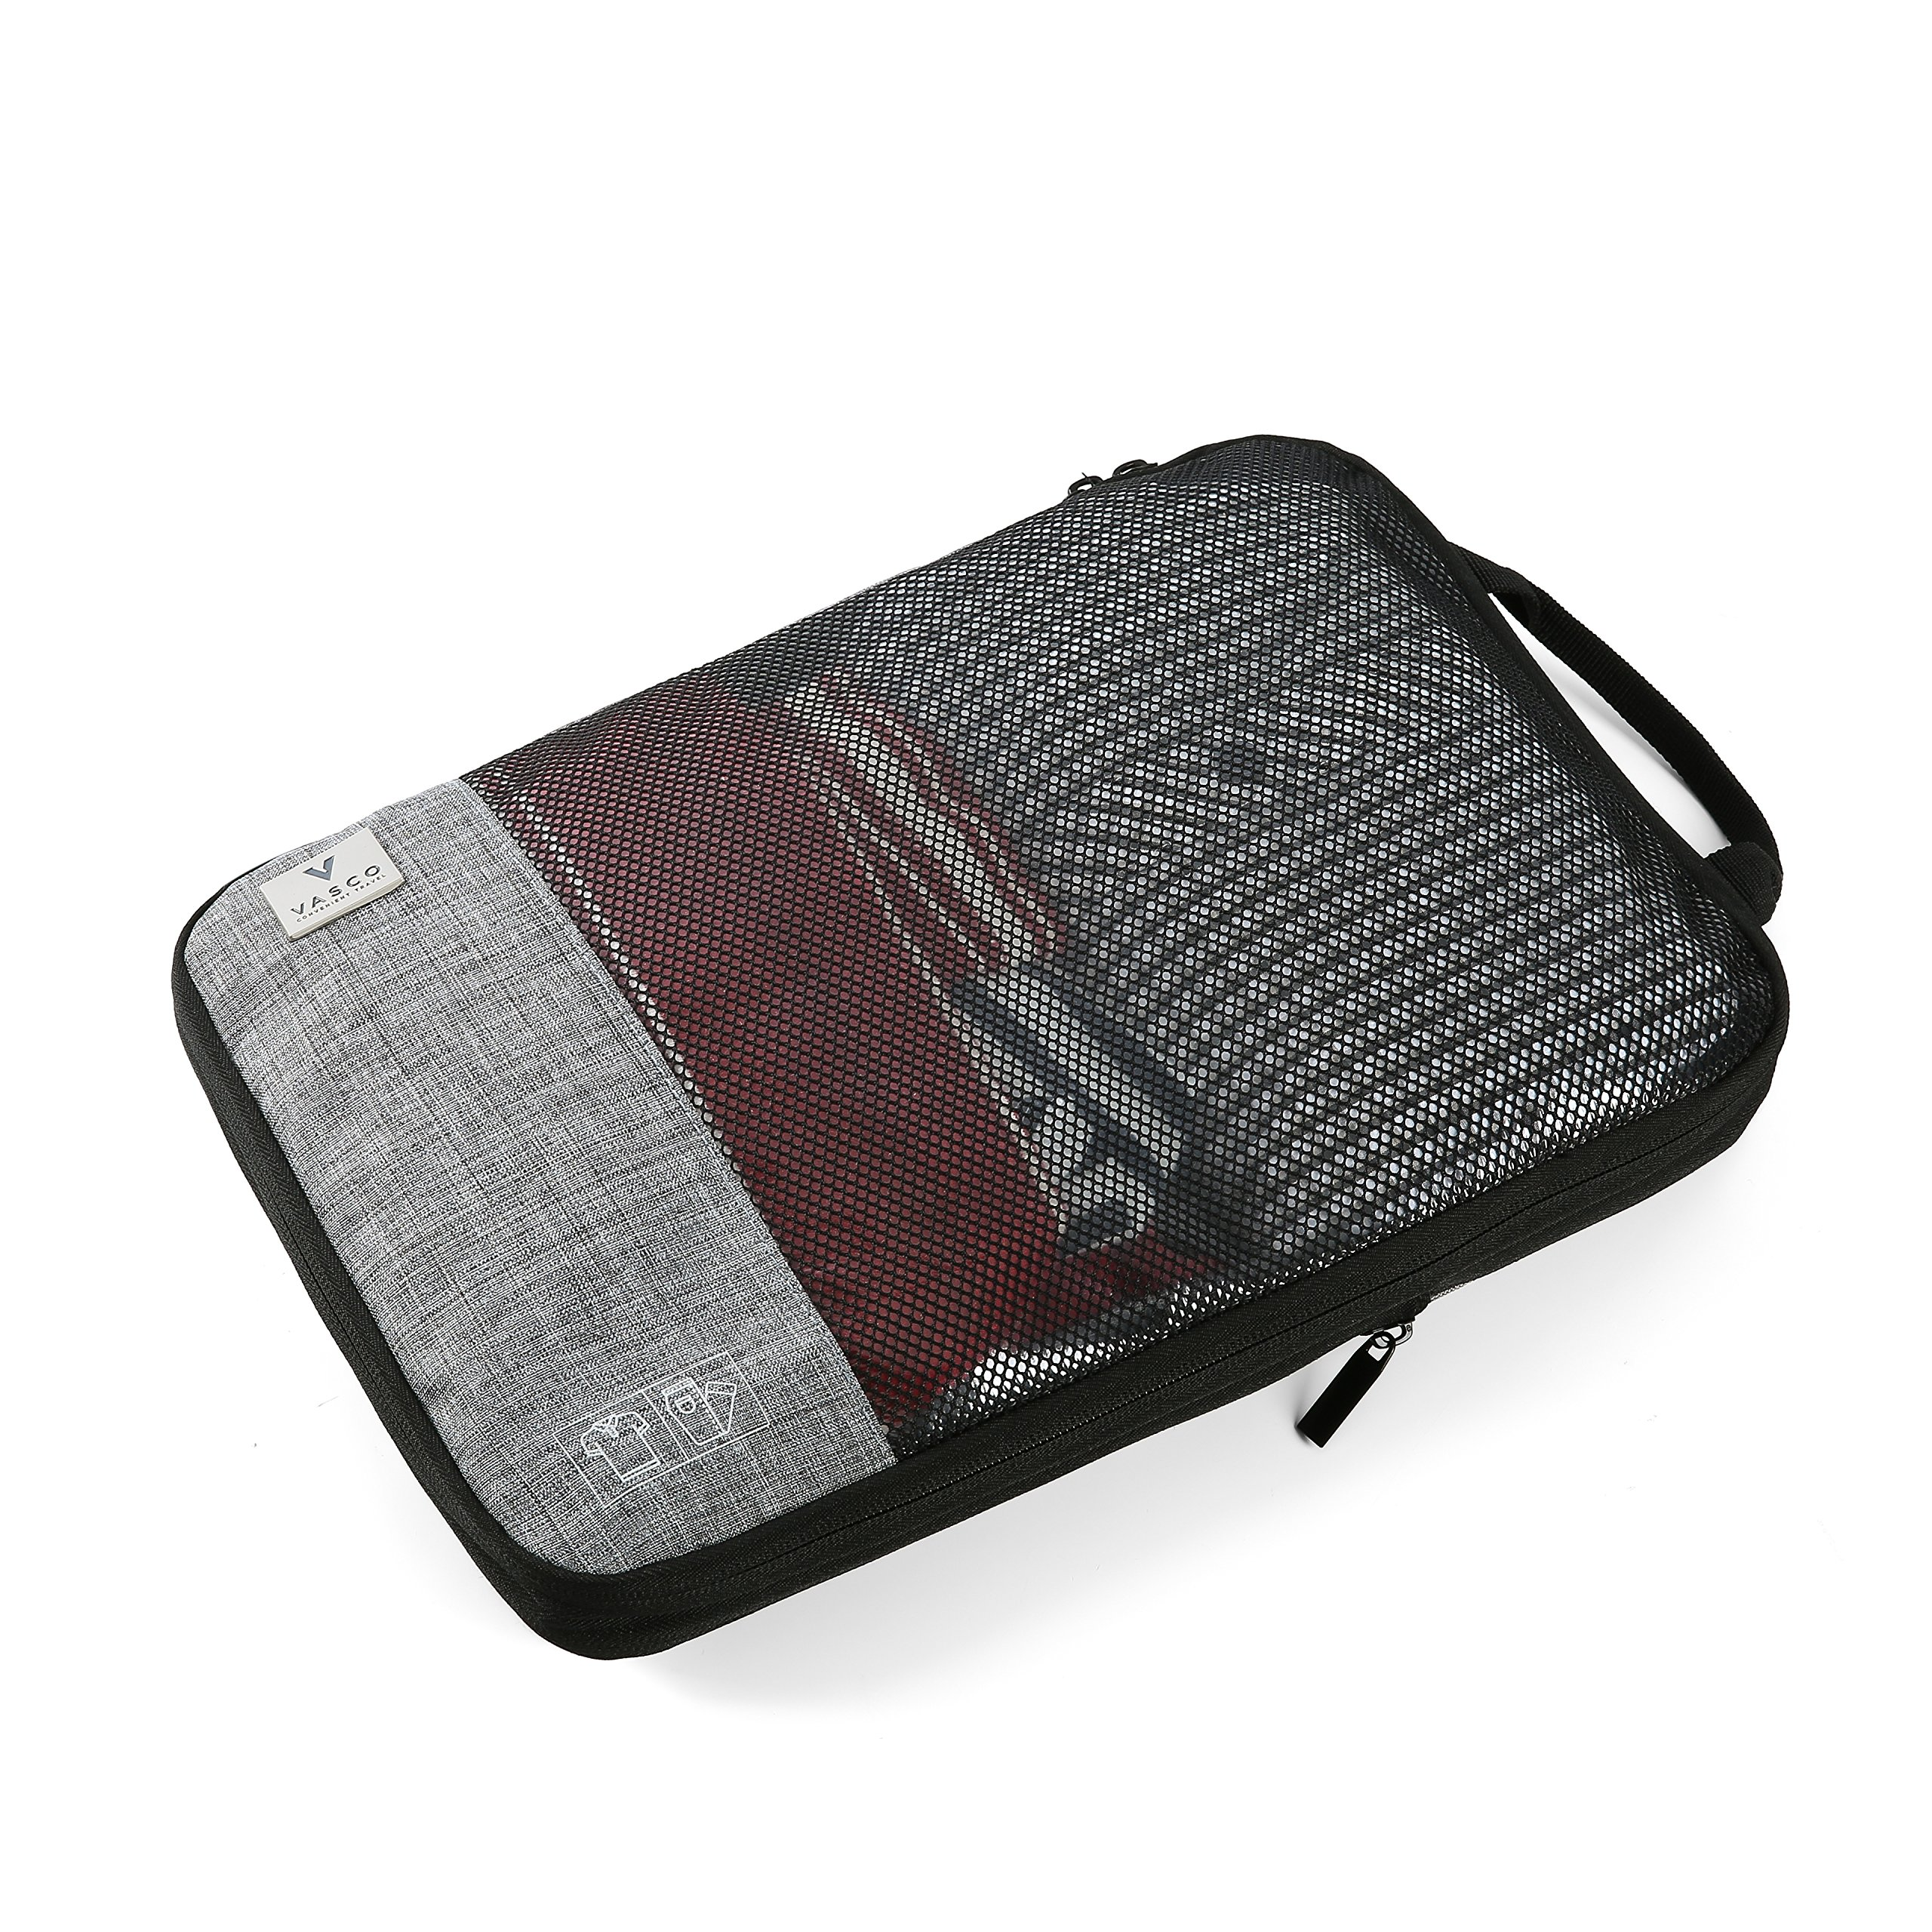 VASCO Compression Packing Cubes for Travel – Set of 3 Slim Packing Cubes by Vasco (Image #2)